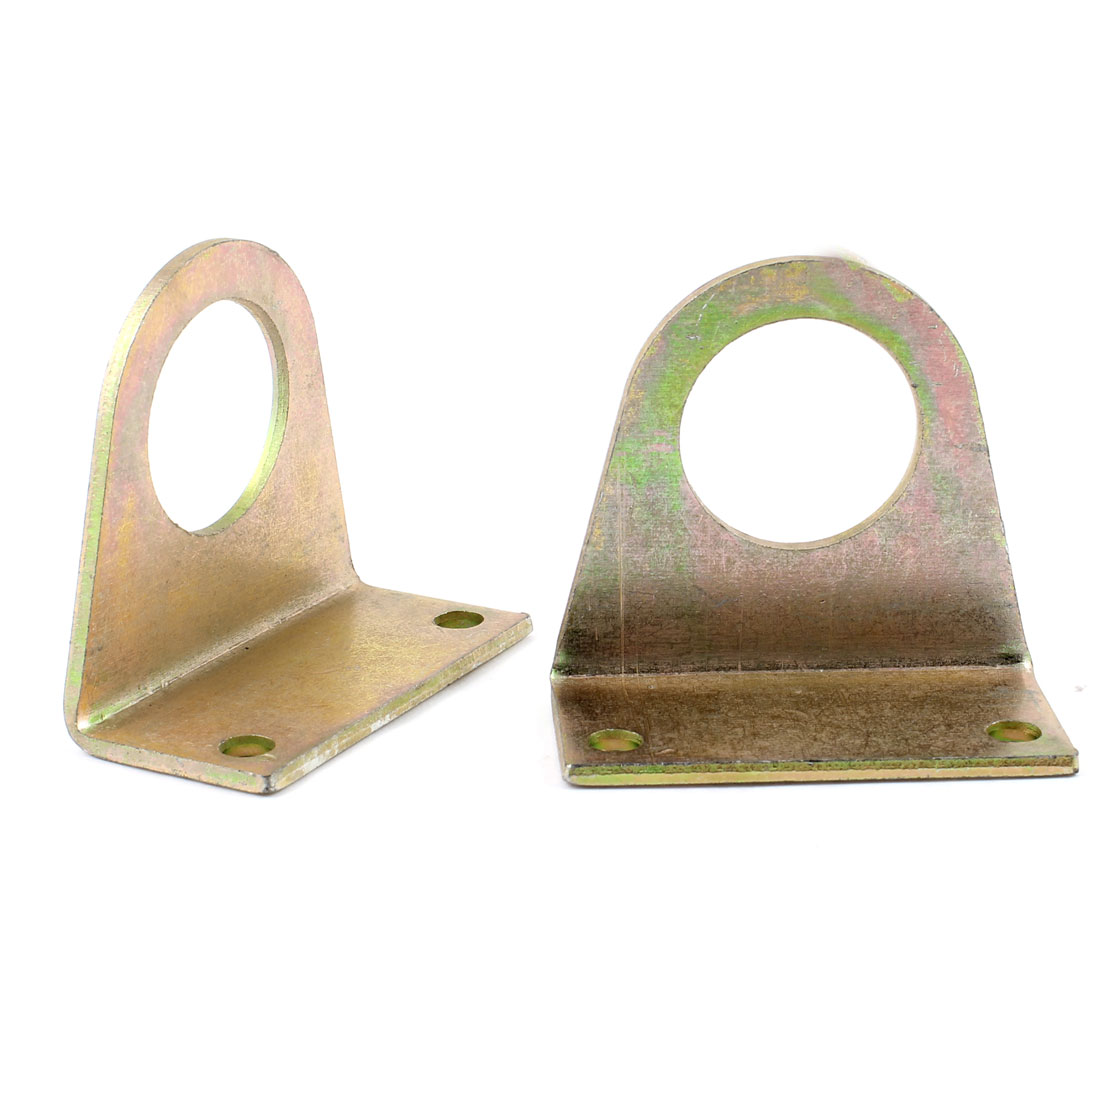 "1"" Dia Hole 2.2"" x 1"" x 1.8"" Right Angle Brass Tone Corner Bracket 2 Pcs"